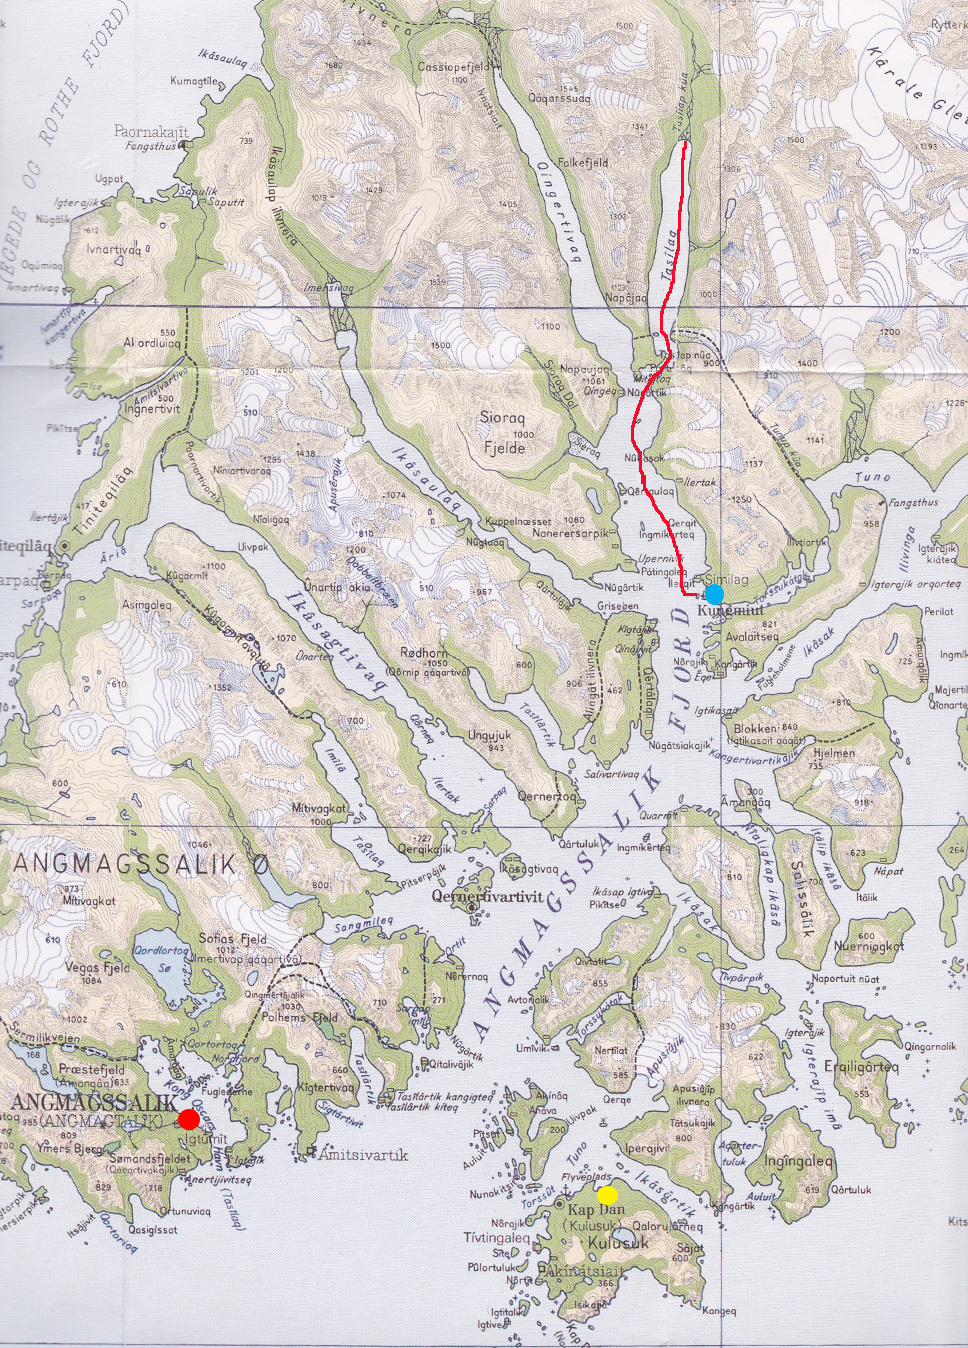 The airport in Kulusuk is shown in yellow; the town of Tasiilaq is in red; the fishing village of Kuummiiut is in blue, with the route in by fishing boat shown as a red line. (Click on map for larger image)